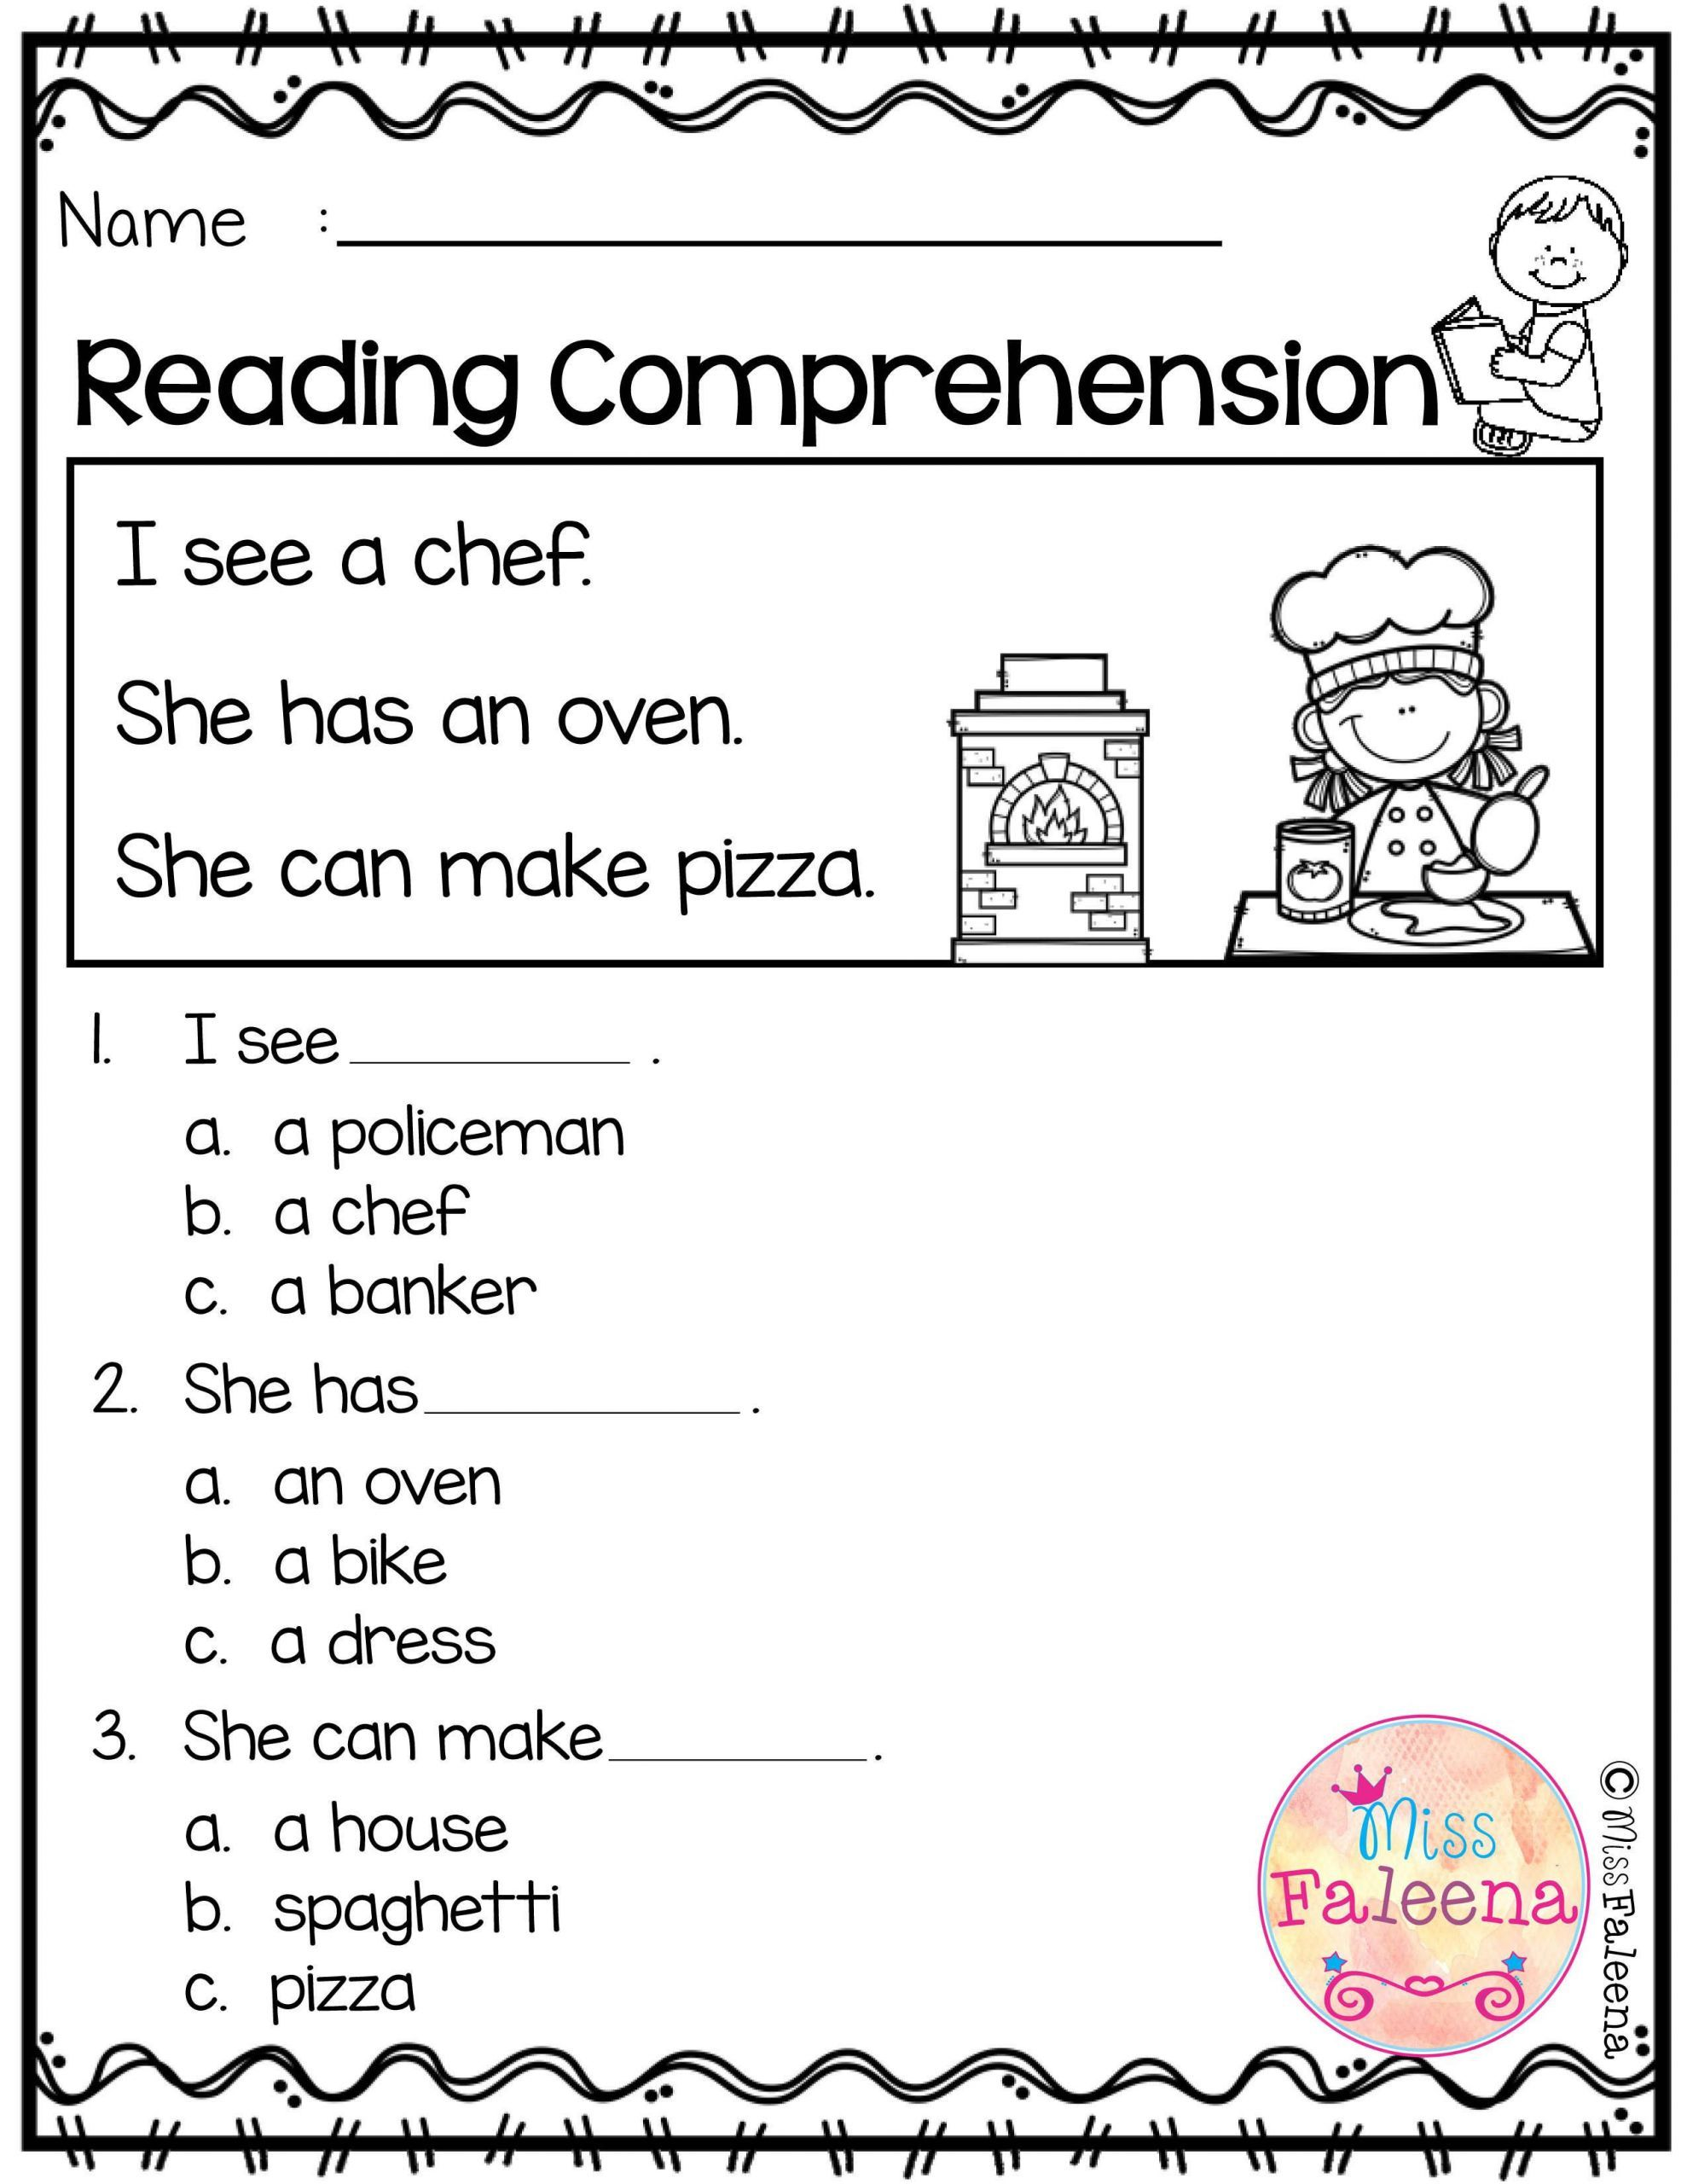 hight resolution of 5 Free Math Worksheets Second Grade 2 Subtraction Subtract whole Tens From  whole … in 2020   Reading comprehension